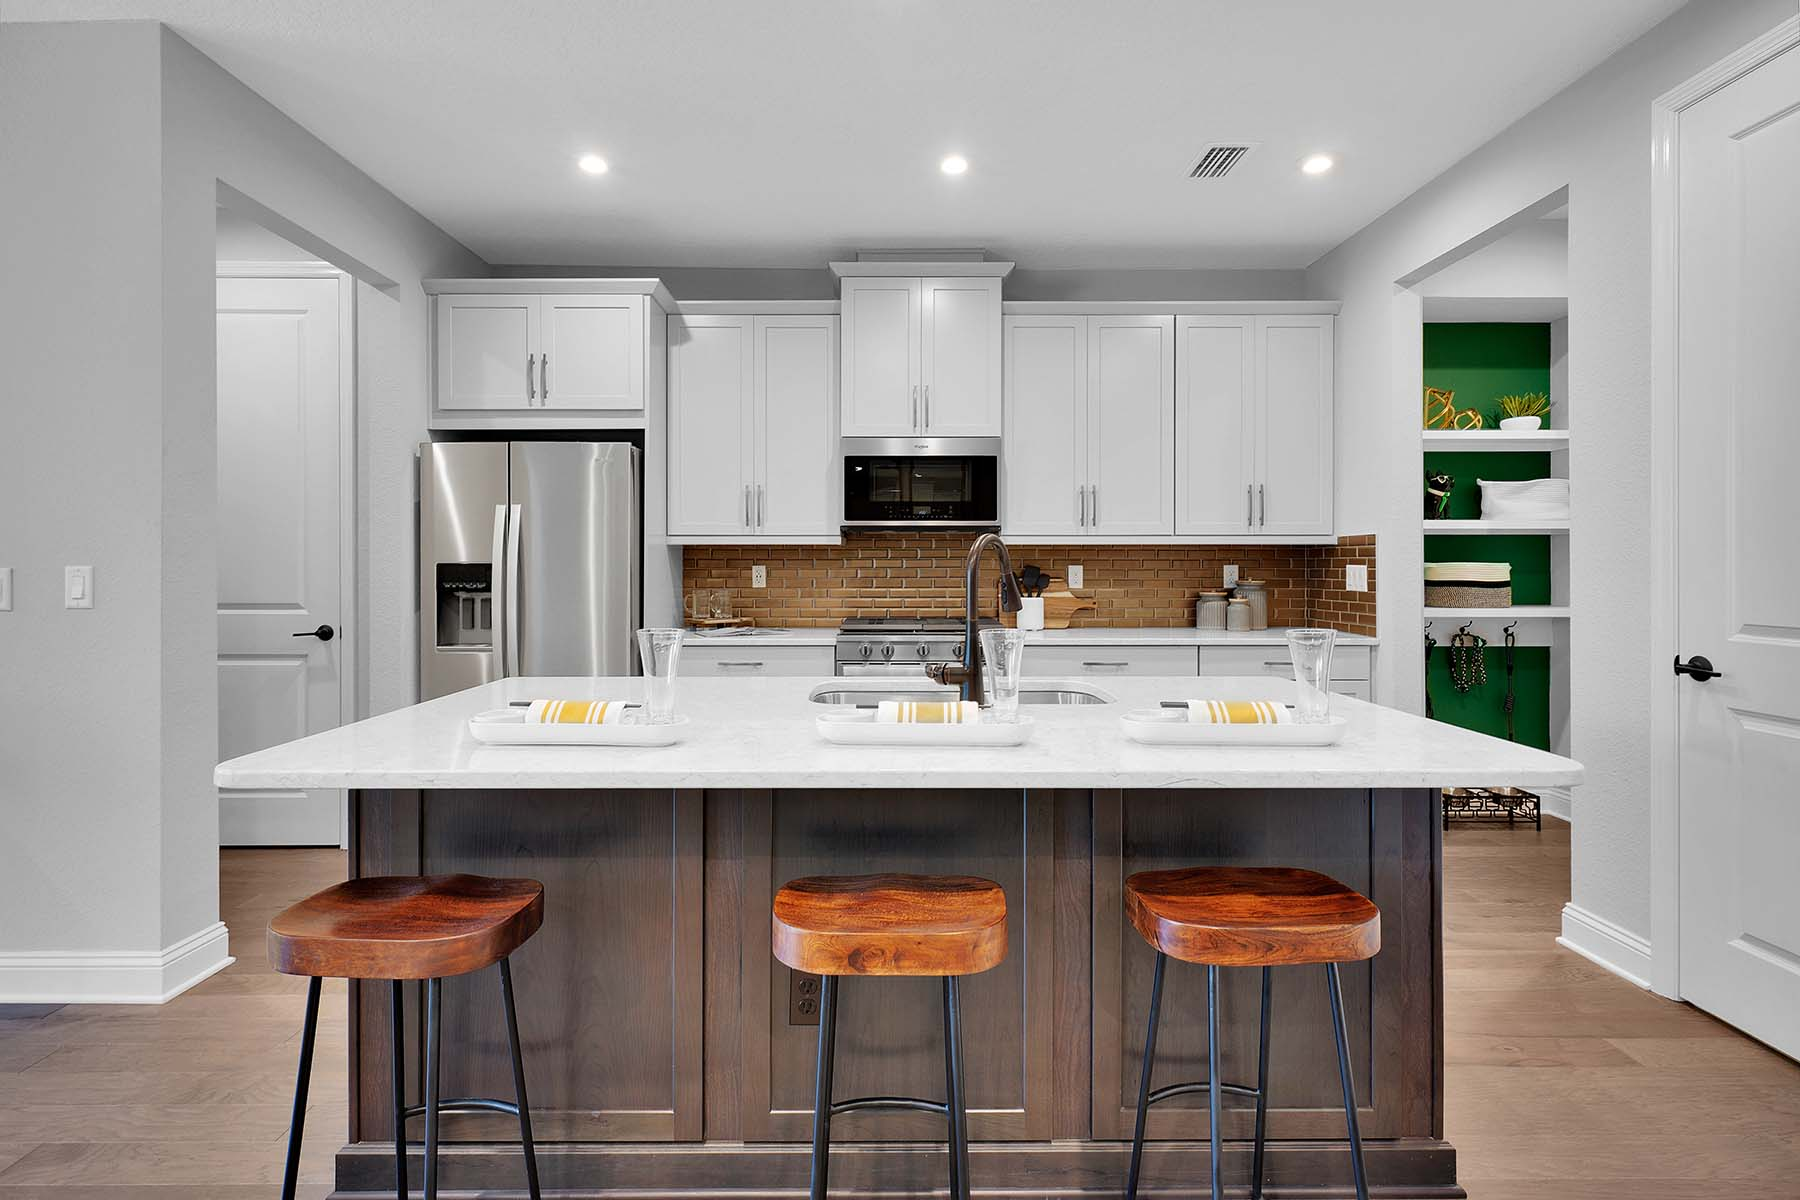 Destan Plan Kitchen at Pablo Cove in Jacksonville Florida by Mattamy Homes